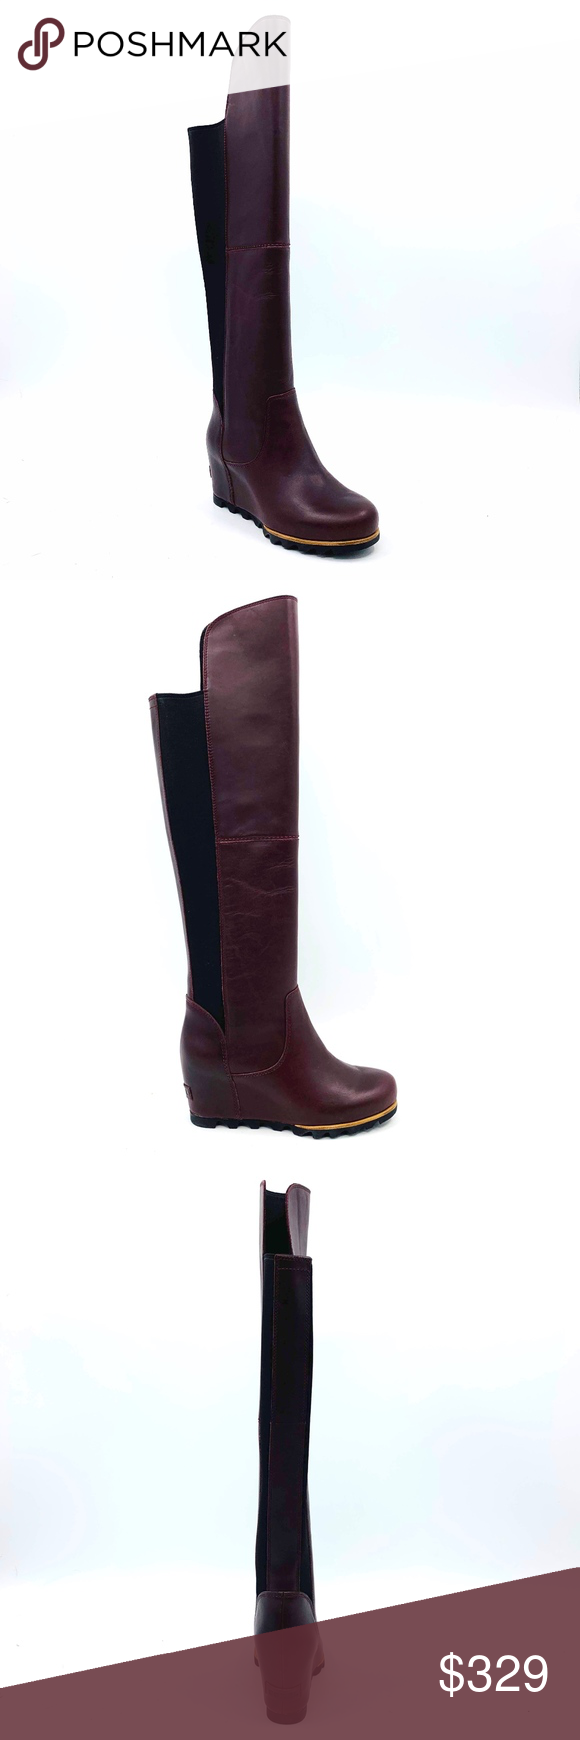 3ae8a48f1bb Sorel Fiona Over the Knee Red Leather Boots Sz 8.5 Sorel Fiona Over the  Knee Lux Rich Wine Red Leather Winter Boot Womens Size 8.5 A lux wedge with  a ...